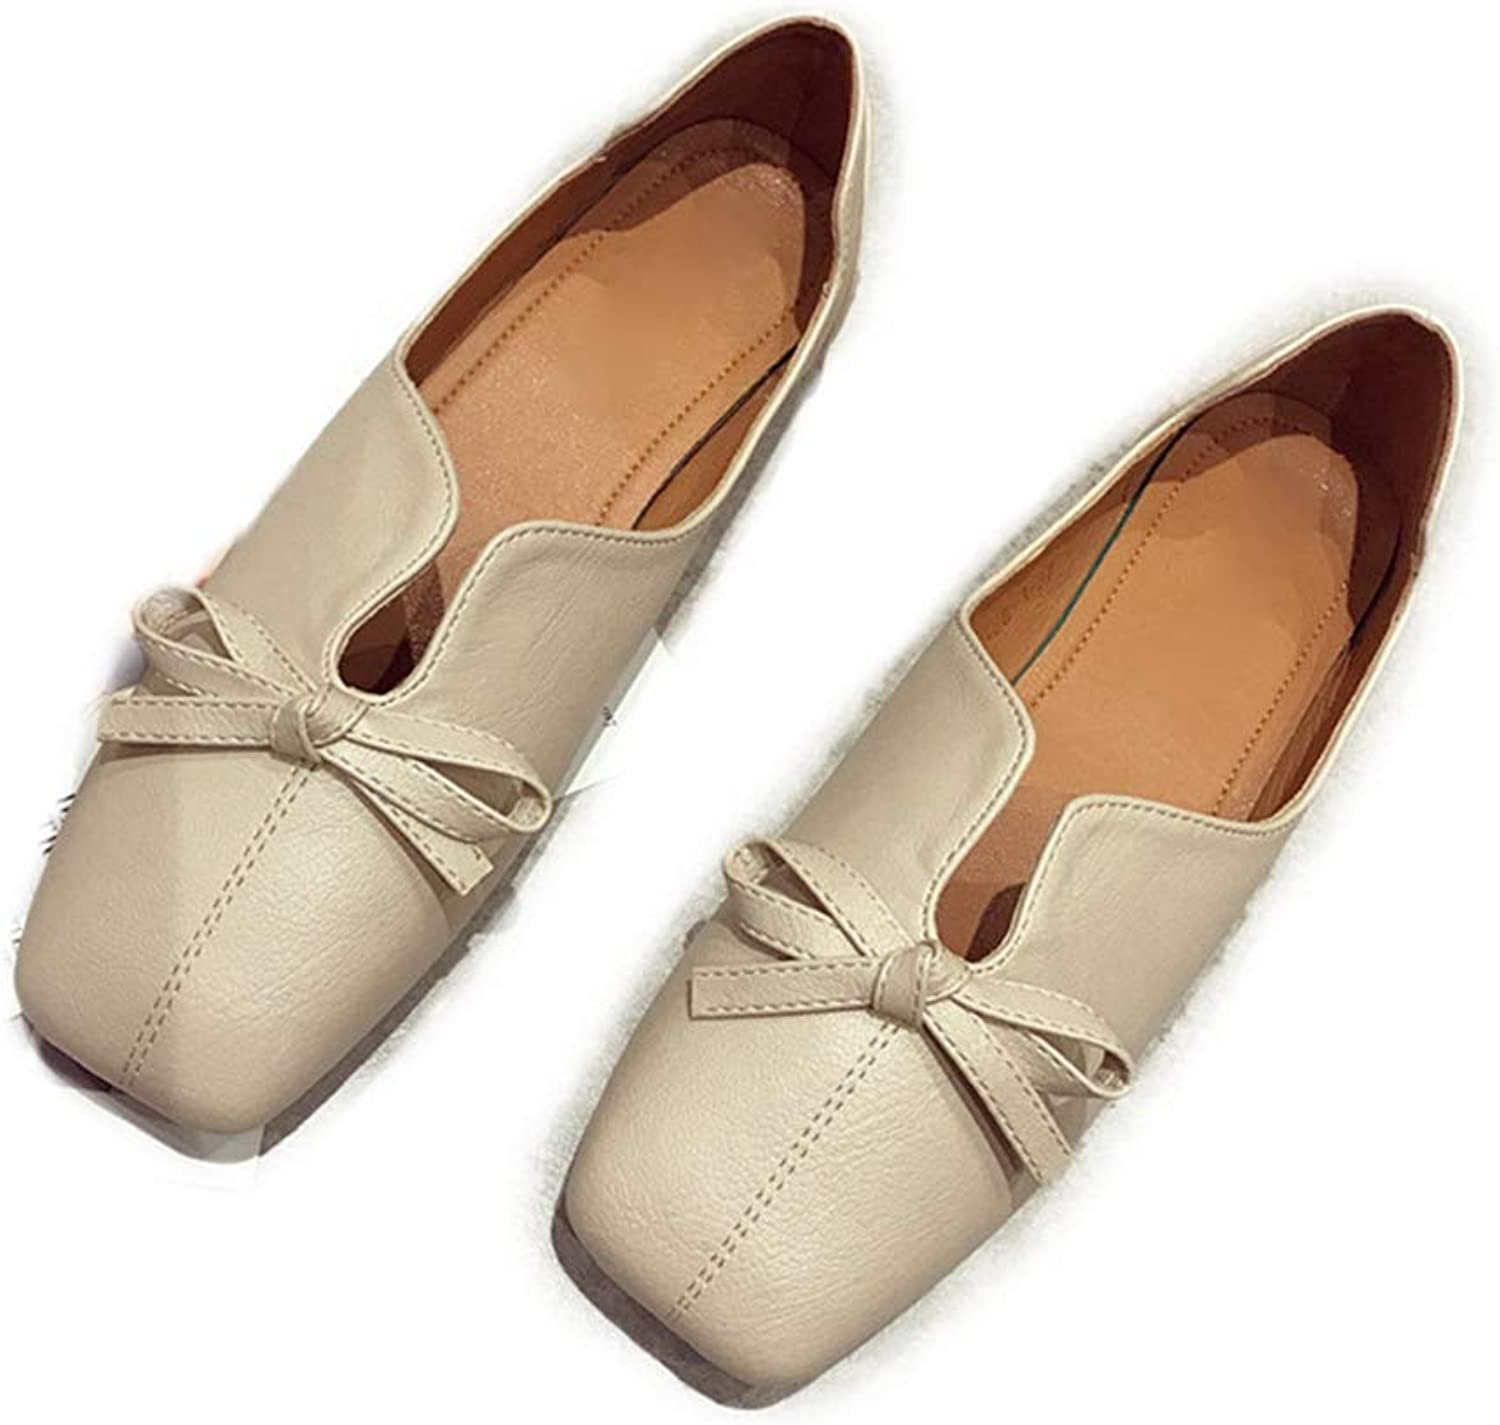 Phil Betty Women Flats shoes Square Toe Soft Soles Slip-On Solid color Comfort Flats shoes